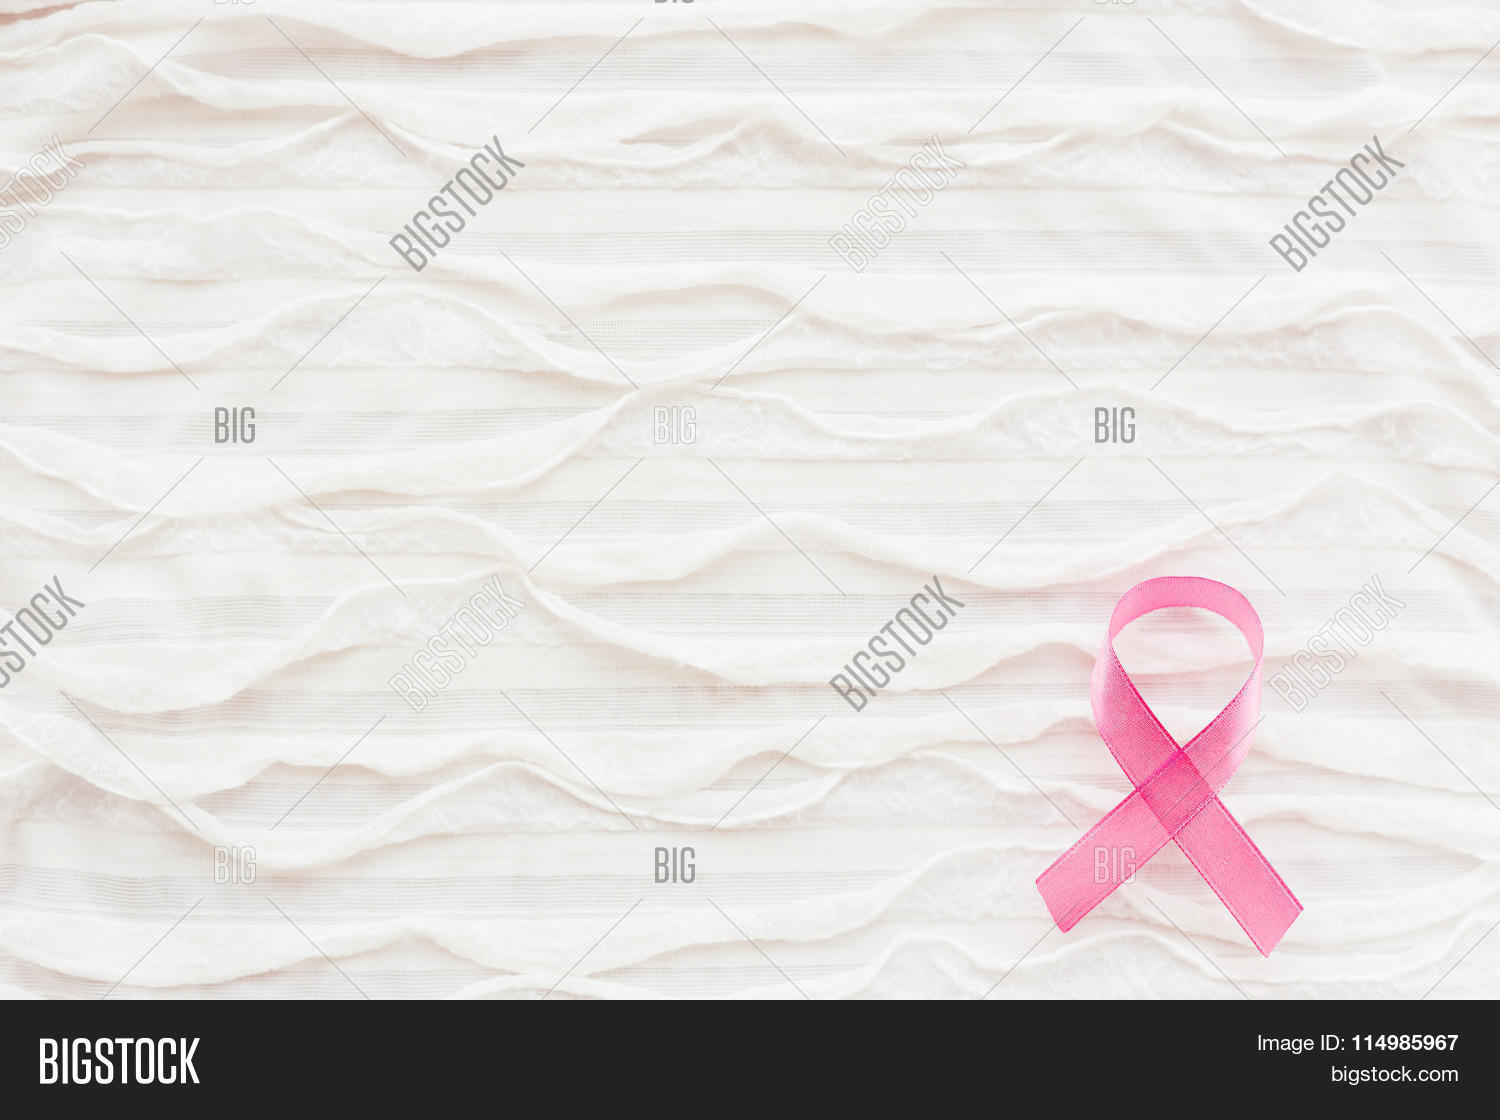 White Fabric Image Photo Free Trial Bigstock